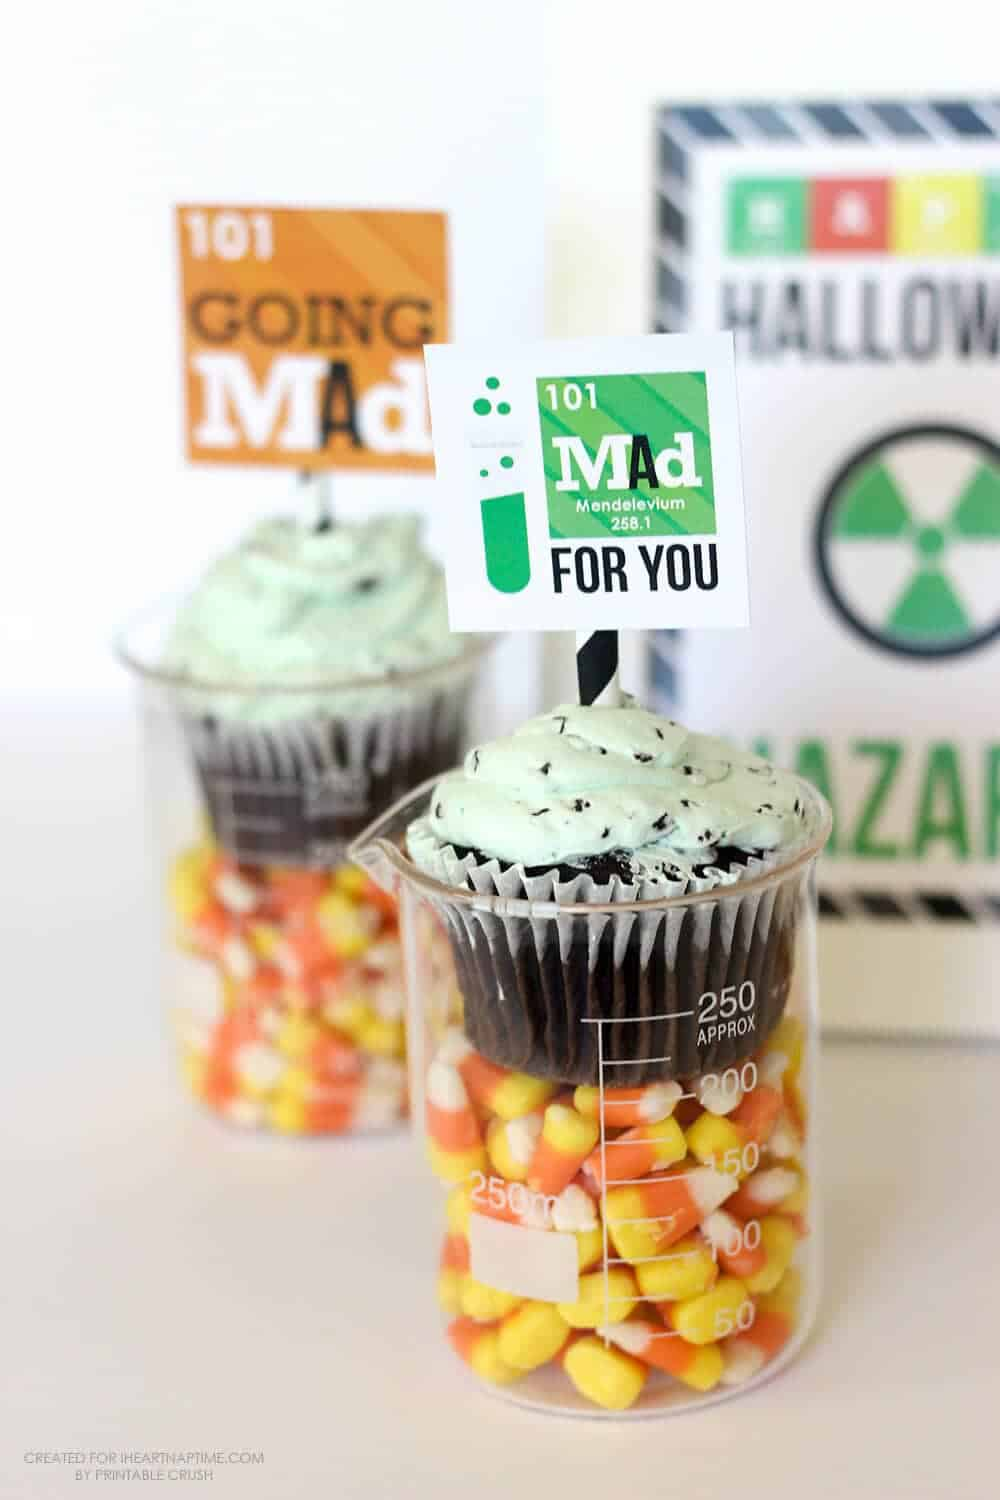 These Mad Scientist Halloween Party Printables are perfect for a little get-together! Grab some beakers and cupcakes to recreate this simple party idea!